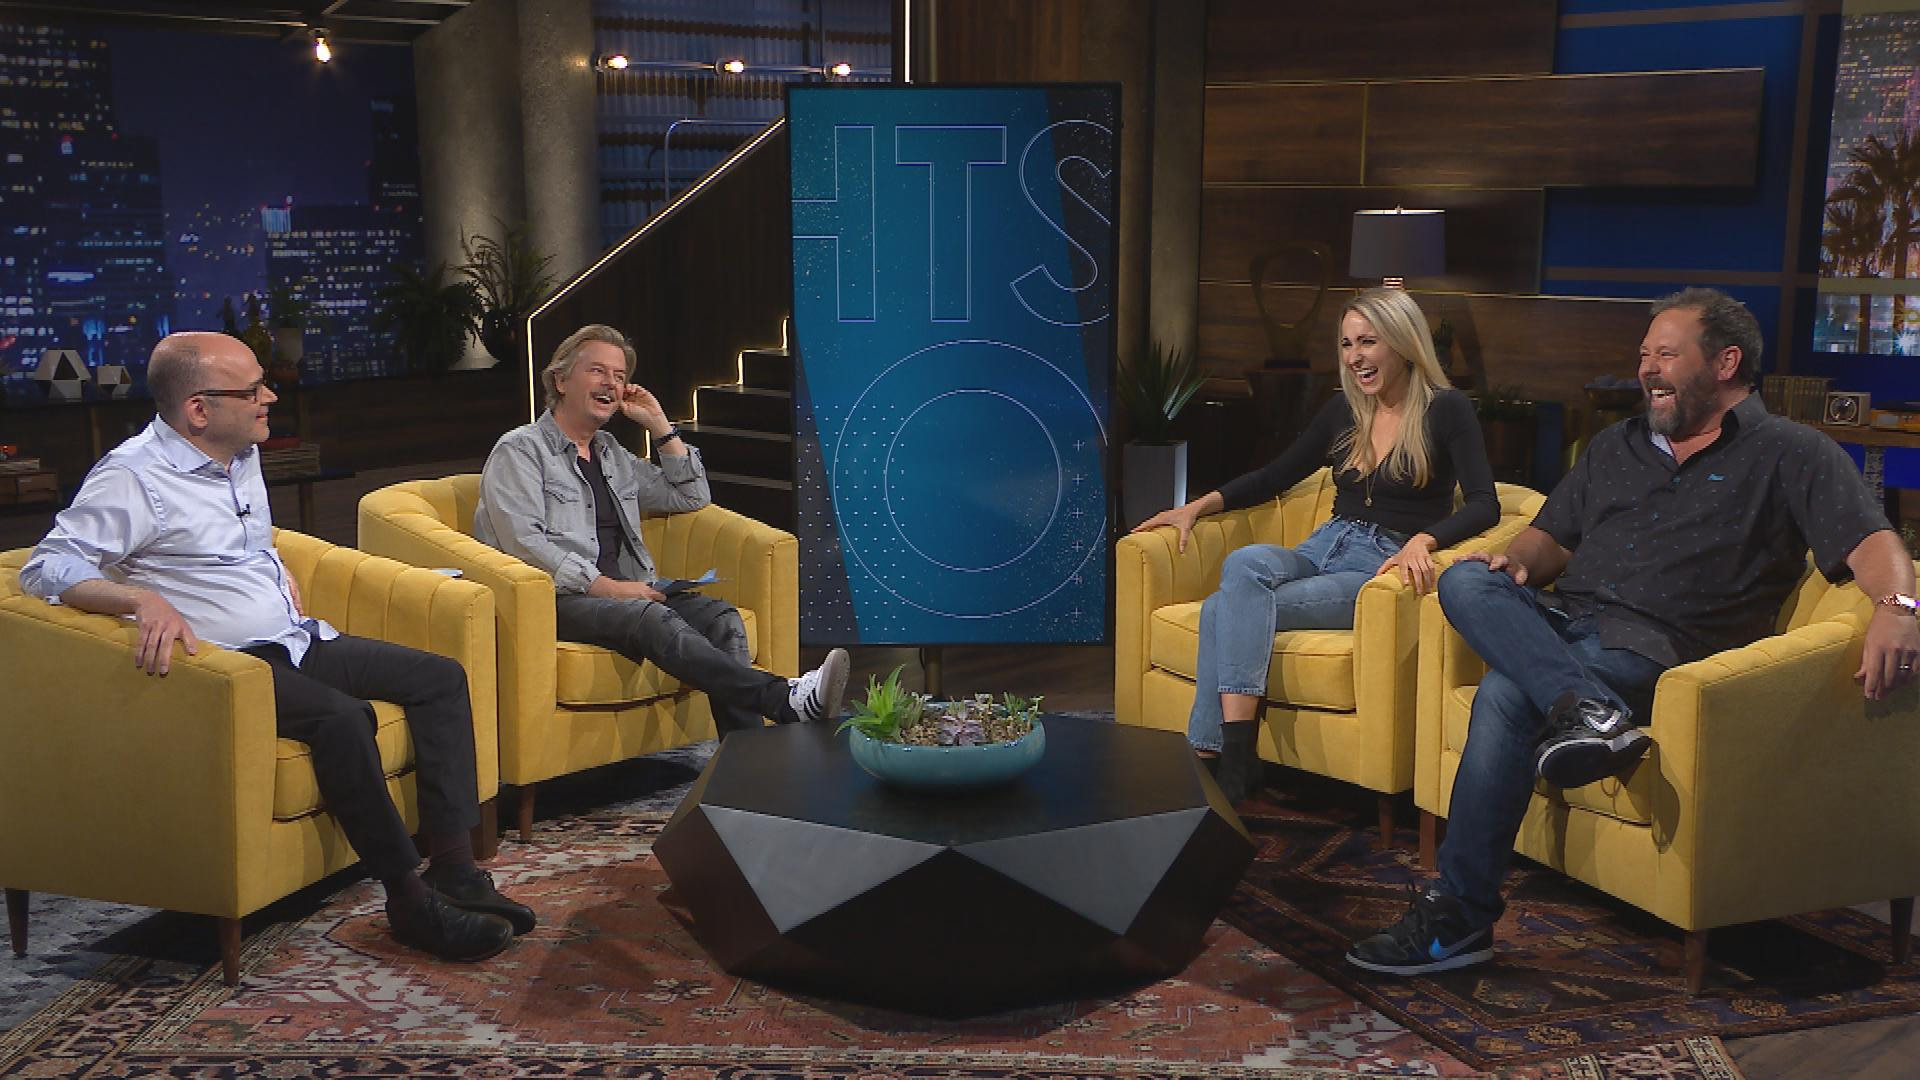 August 21, 2019 - Nikki Glaser, Bert Kreischer & Todd Barry